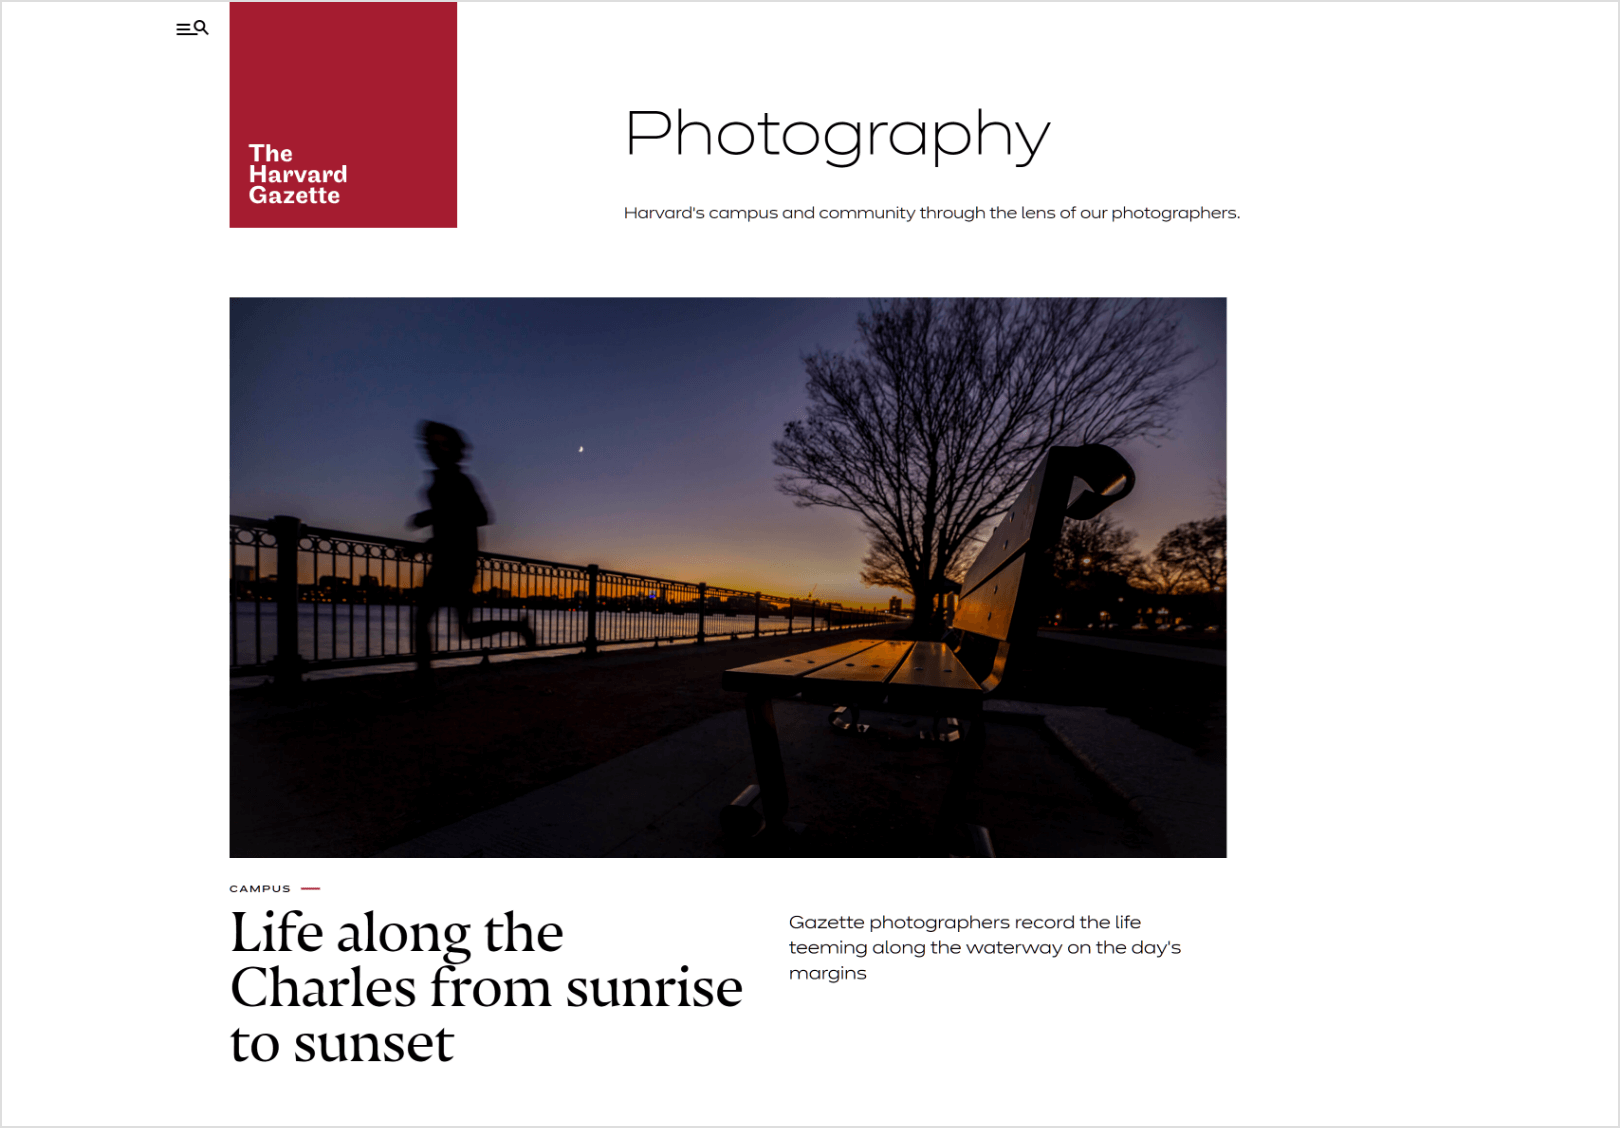 The-Harvard-Gazette-photography-page